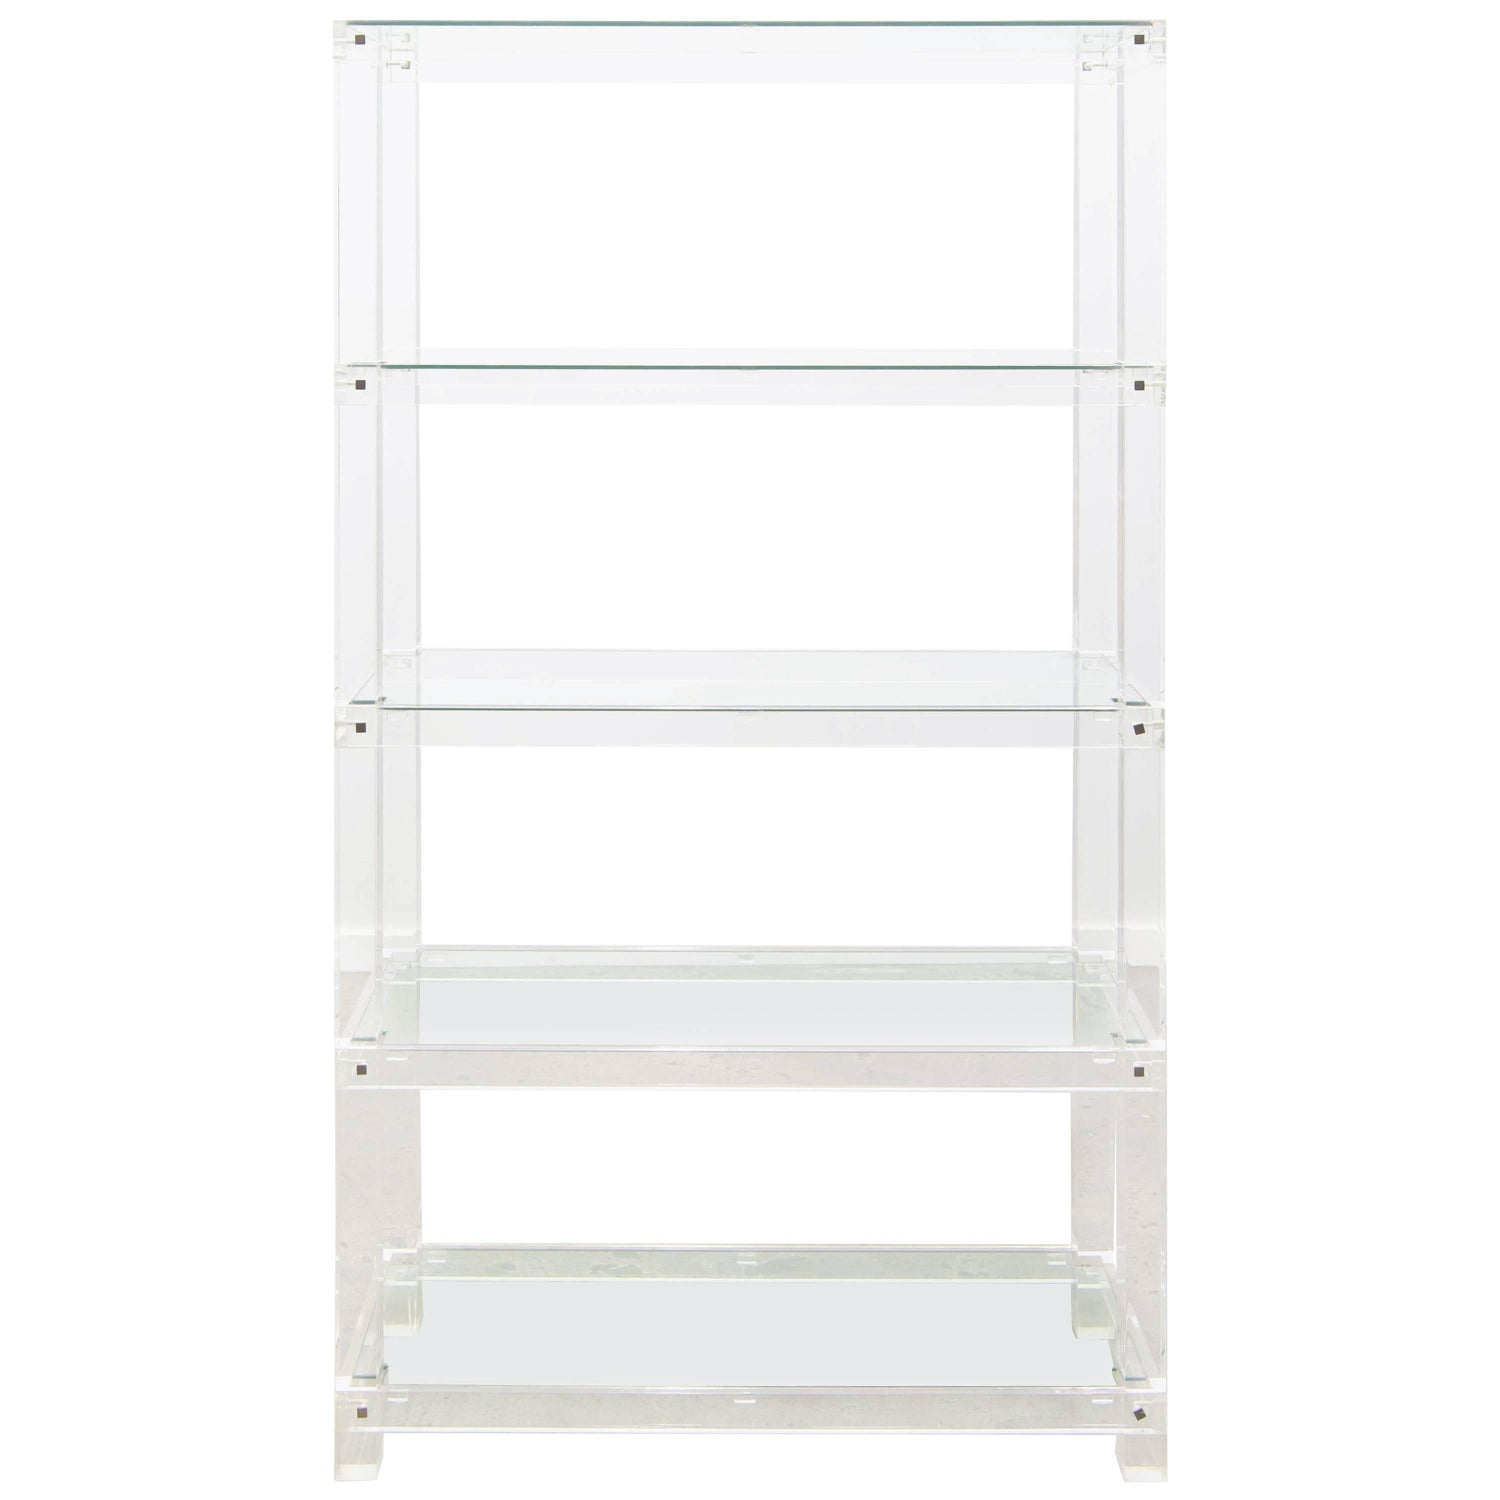 Lucite Plexiglass And Glass Tag Re Designed By Hollis Jones For  # Etagere Vintage Plexiglas